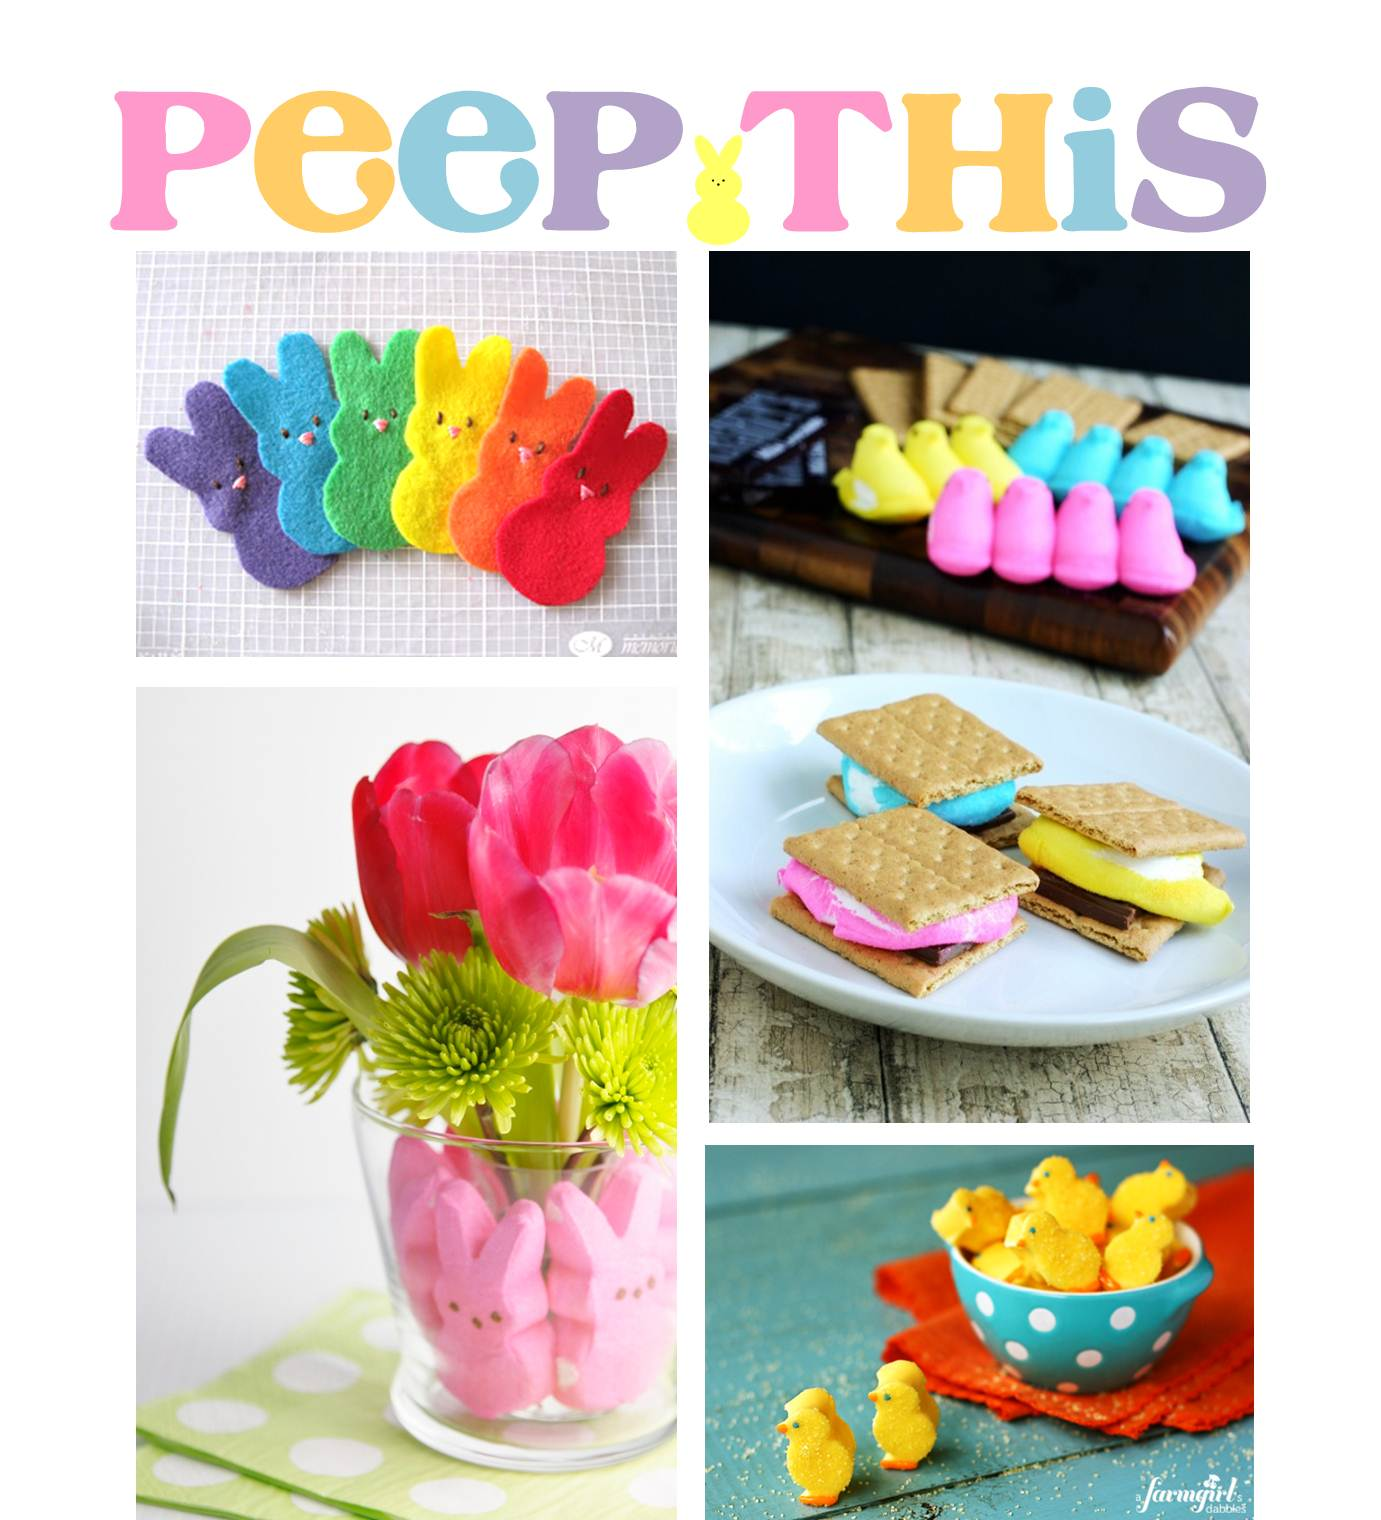 Gallery of Cute Easter Gifts Pinterest - Shohaminc.com